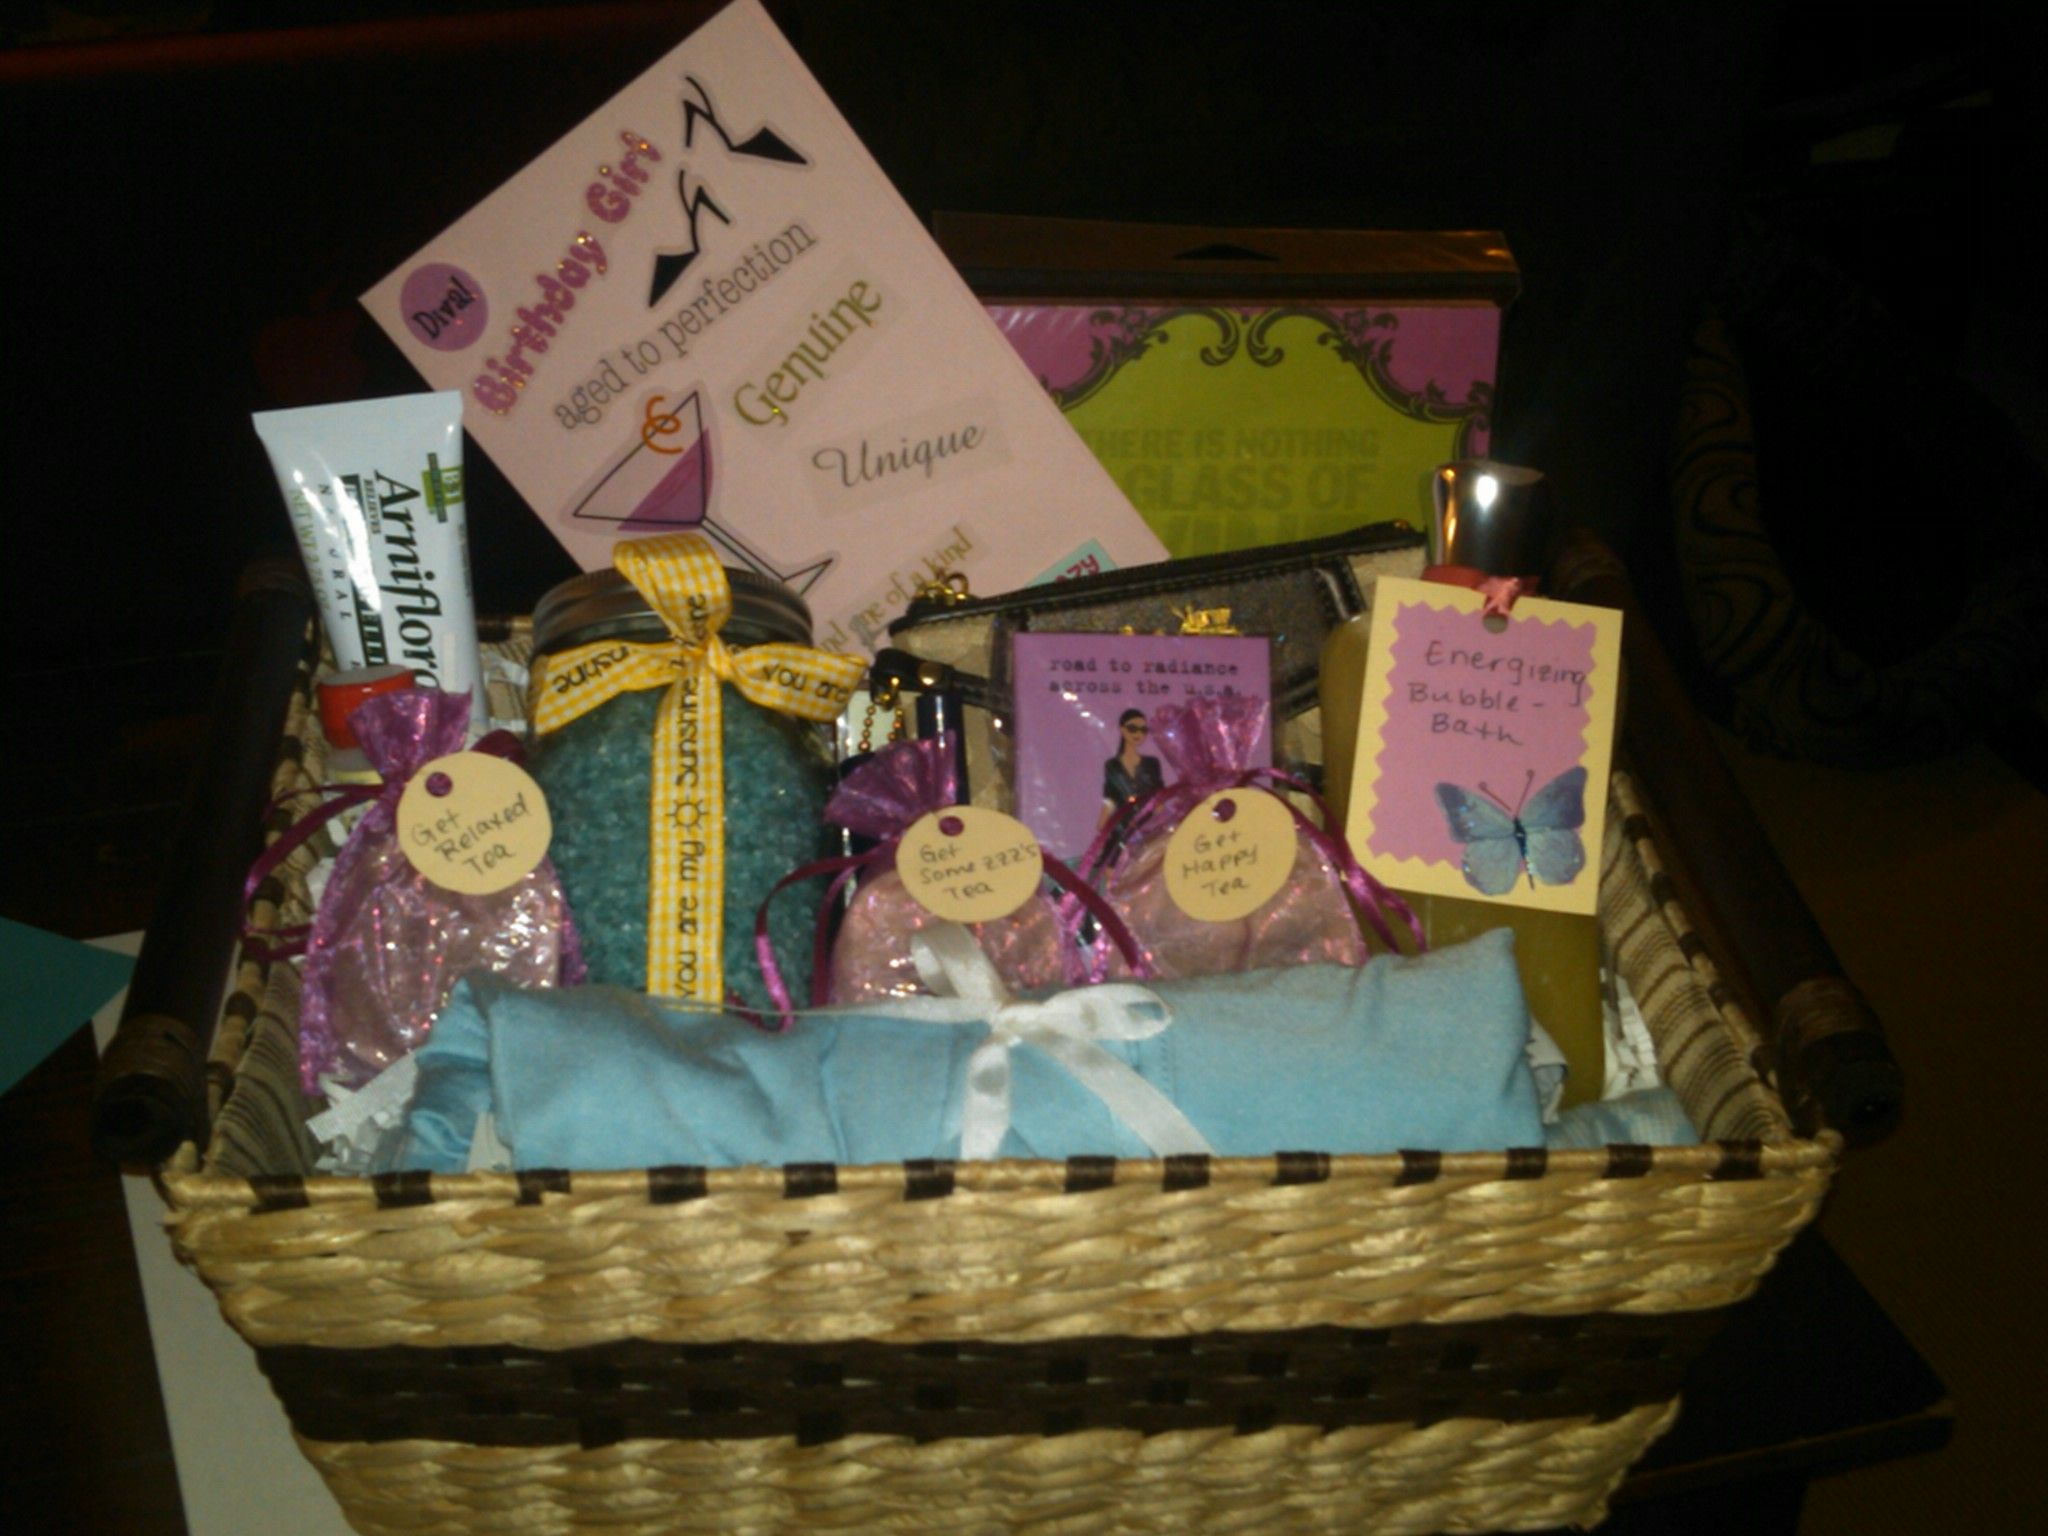 Best friend gift with tea assortments and home made bath